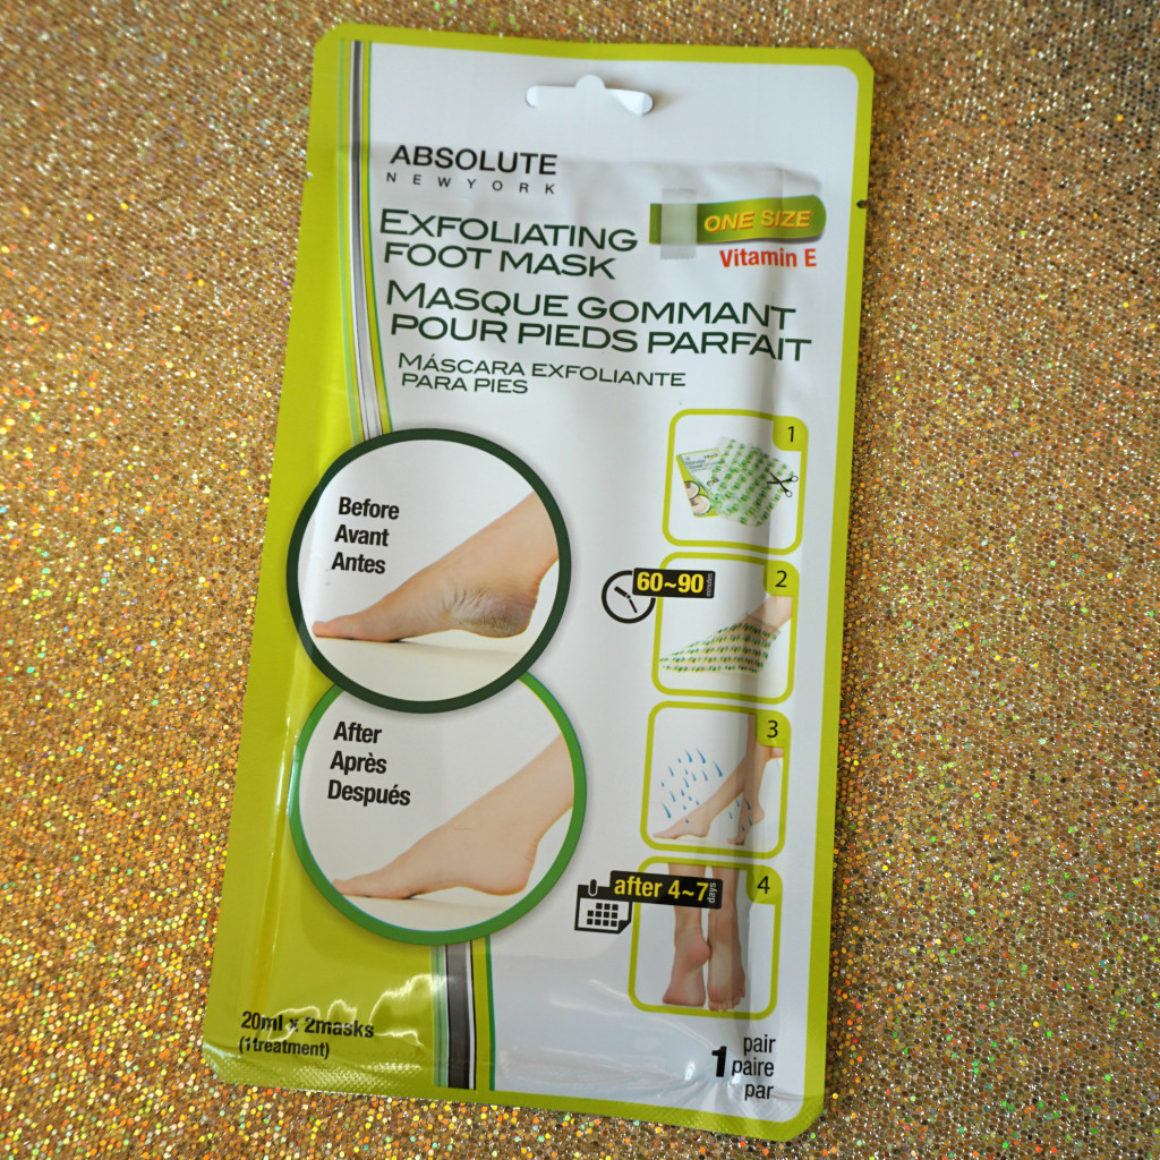 Review: Absolute New York Exfoliating Foot Mask